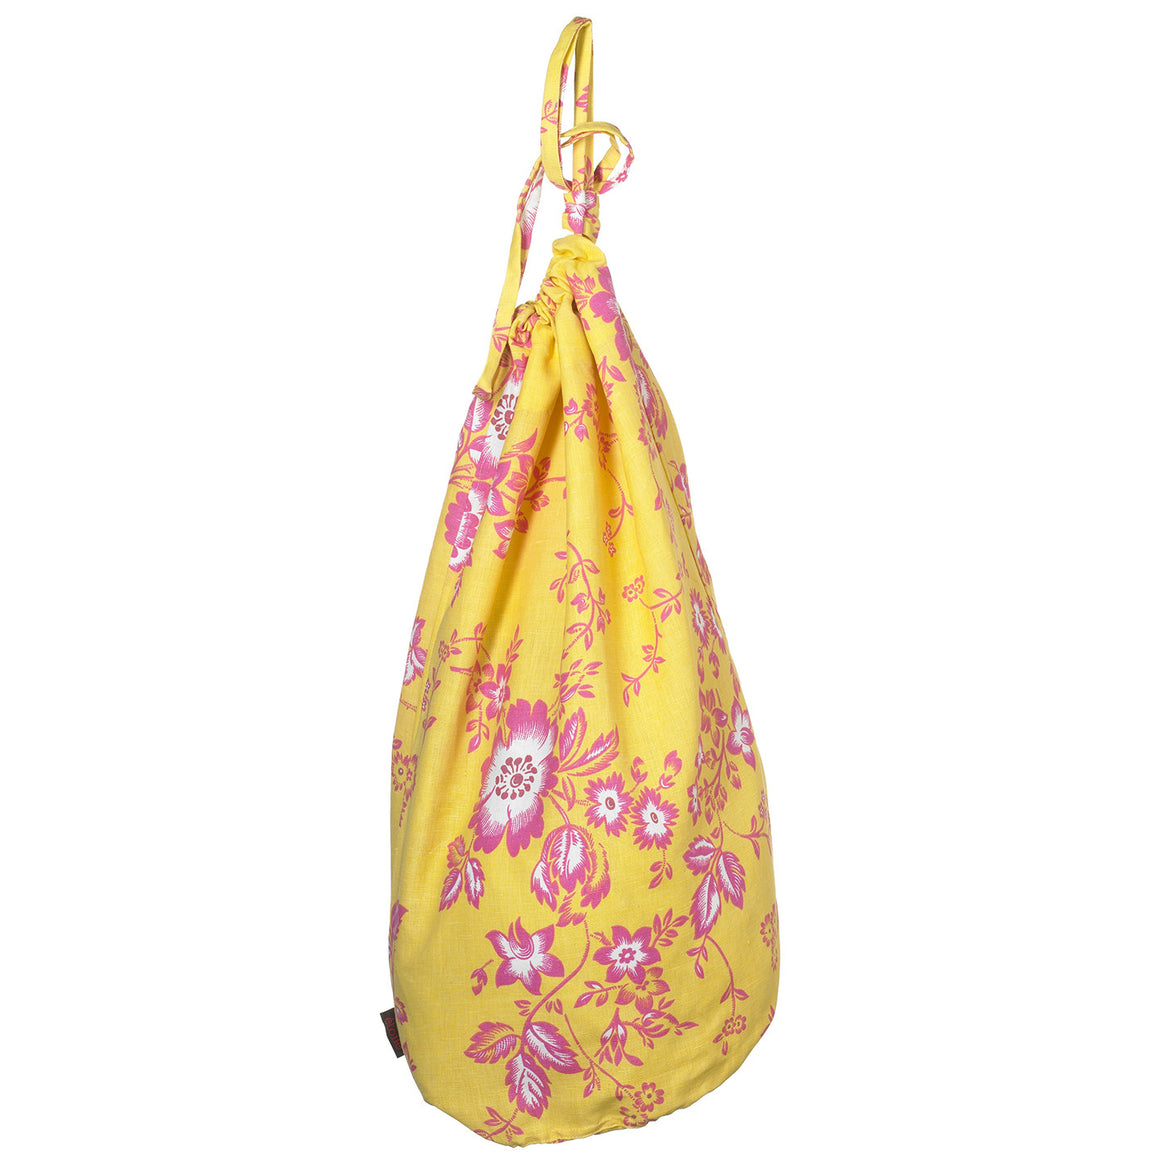 Miles Vintage Style Floral Pattern Linen Cotton Drawstring Laundry & Storage Bags in Lemon Yellow & Pink Ships from Canada (USA)